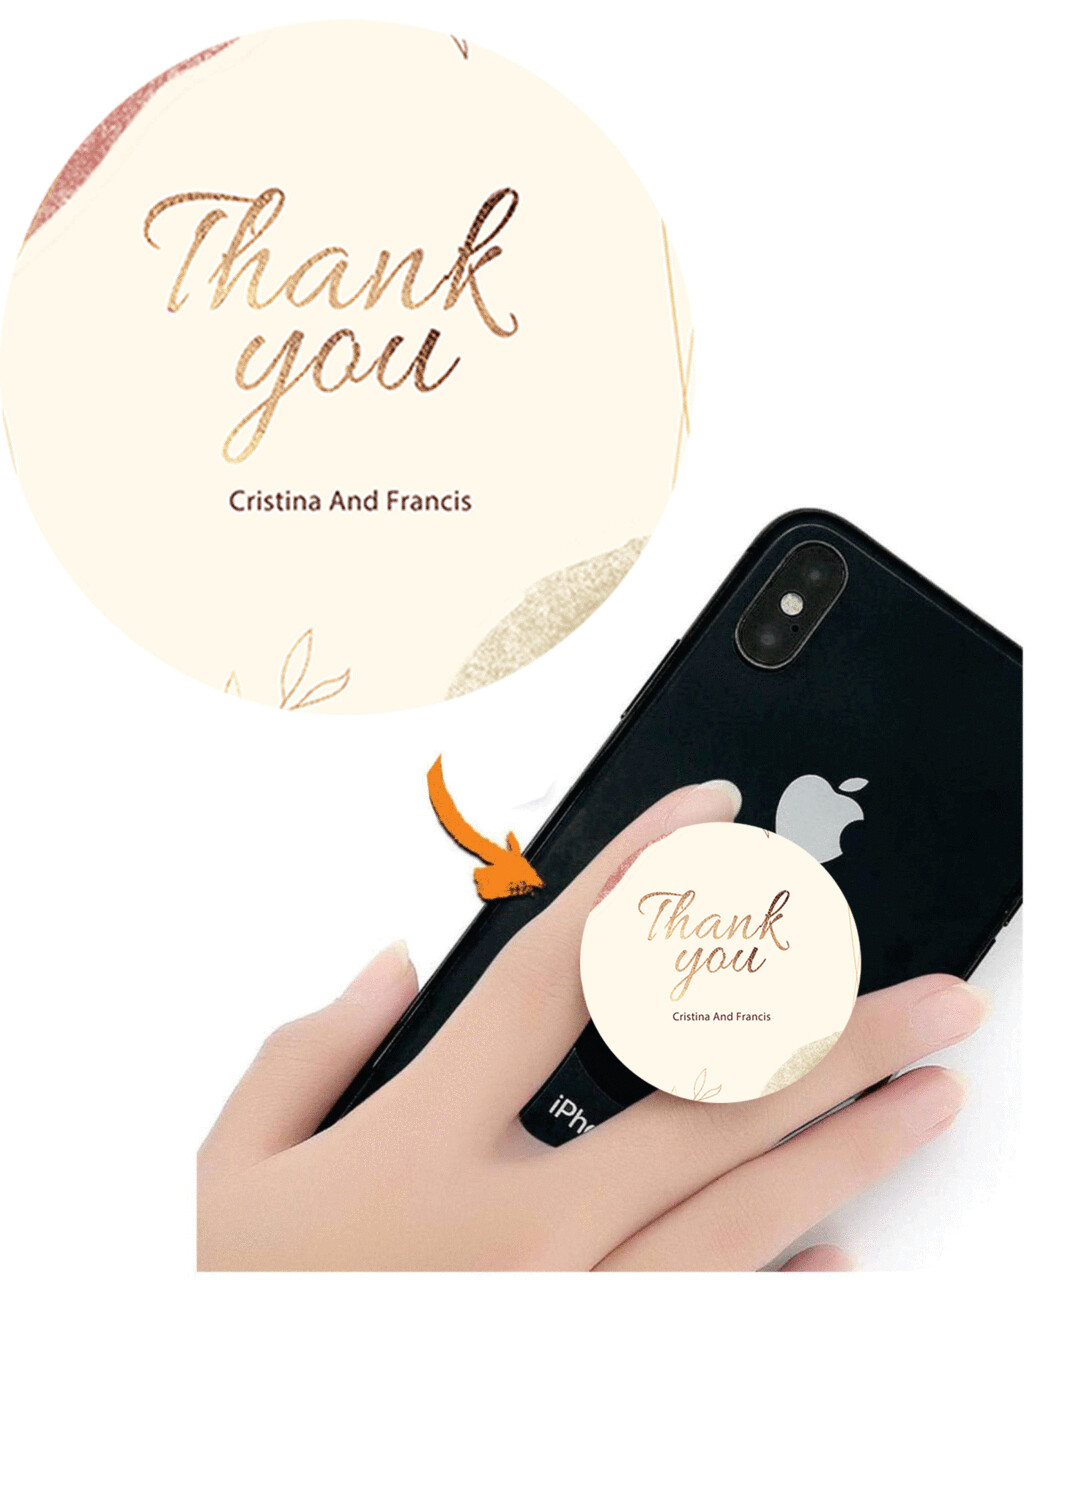 Phone Grips - PopSocket Custom - Personalized PopSocket- customized popsocket - PopSocket custom - wedding gift popsocket=Colorful Minimalist Watercolor Warm Holiday Thank You Card Premium Template